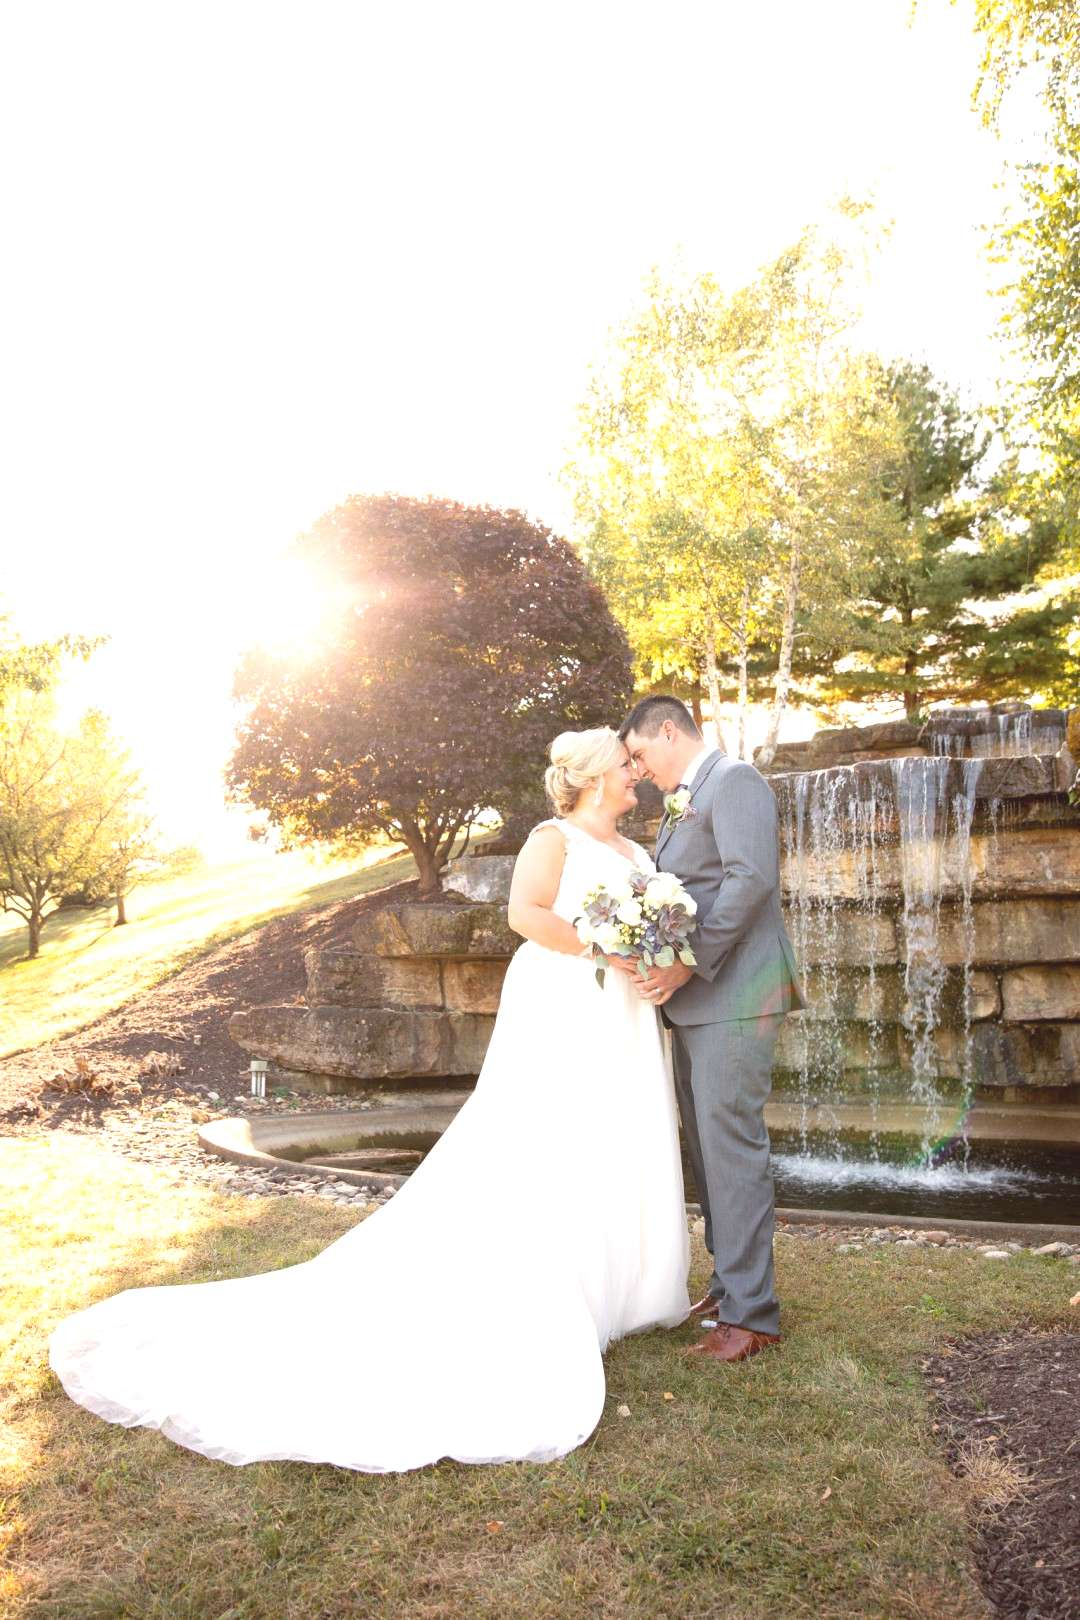 Waterfall at Southpointe - Pittsburgh Photo Locations#locations